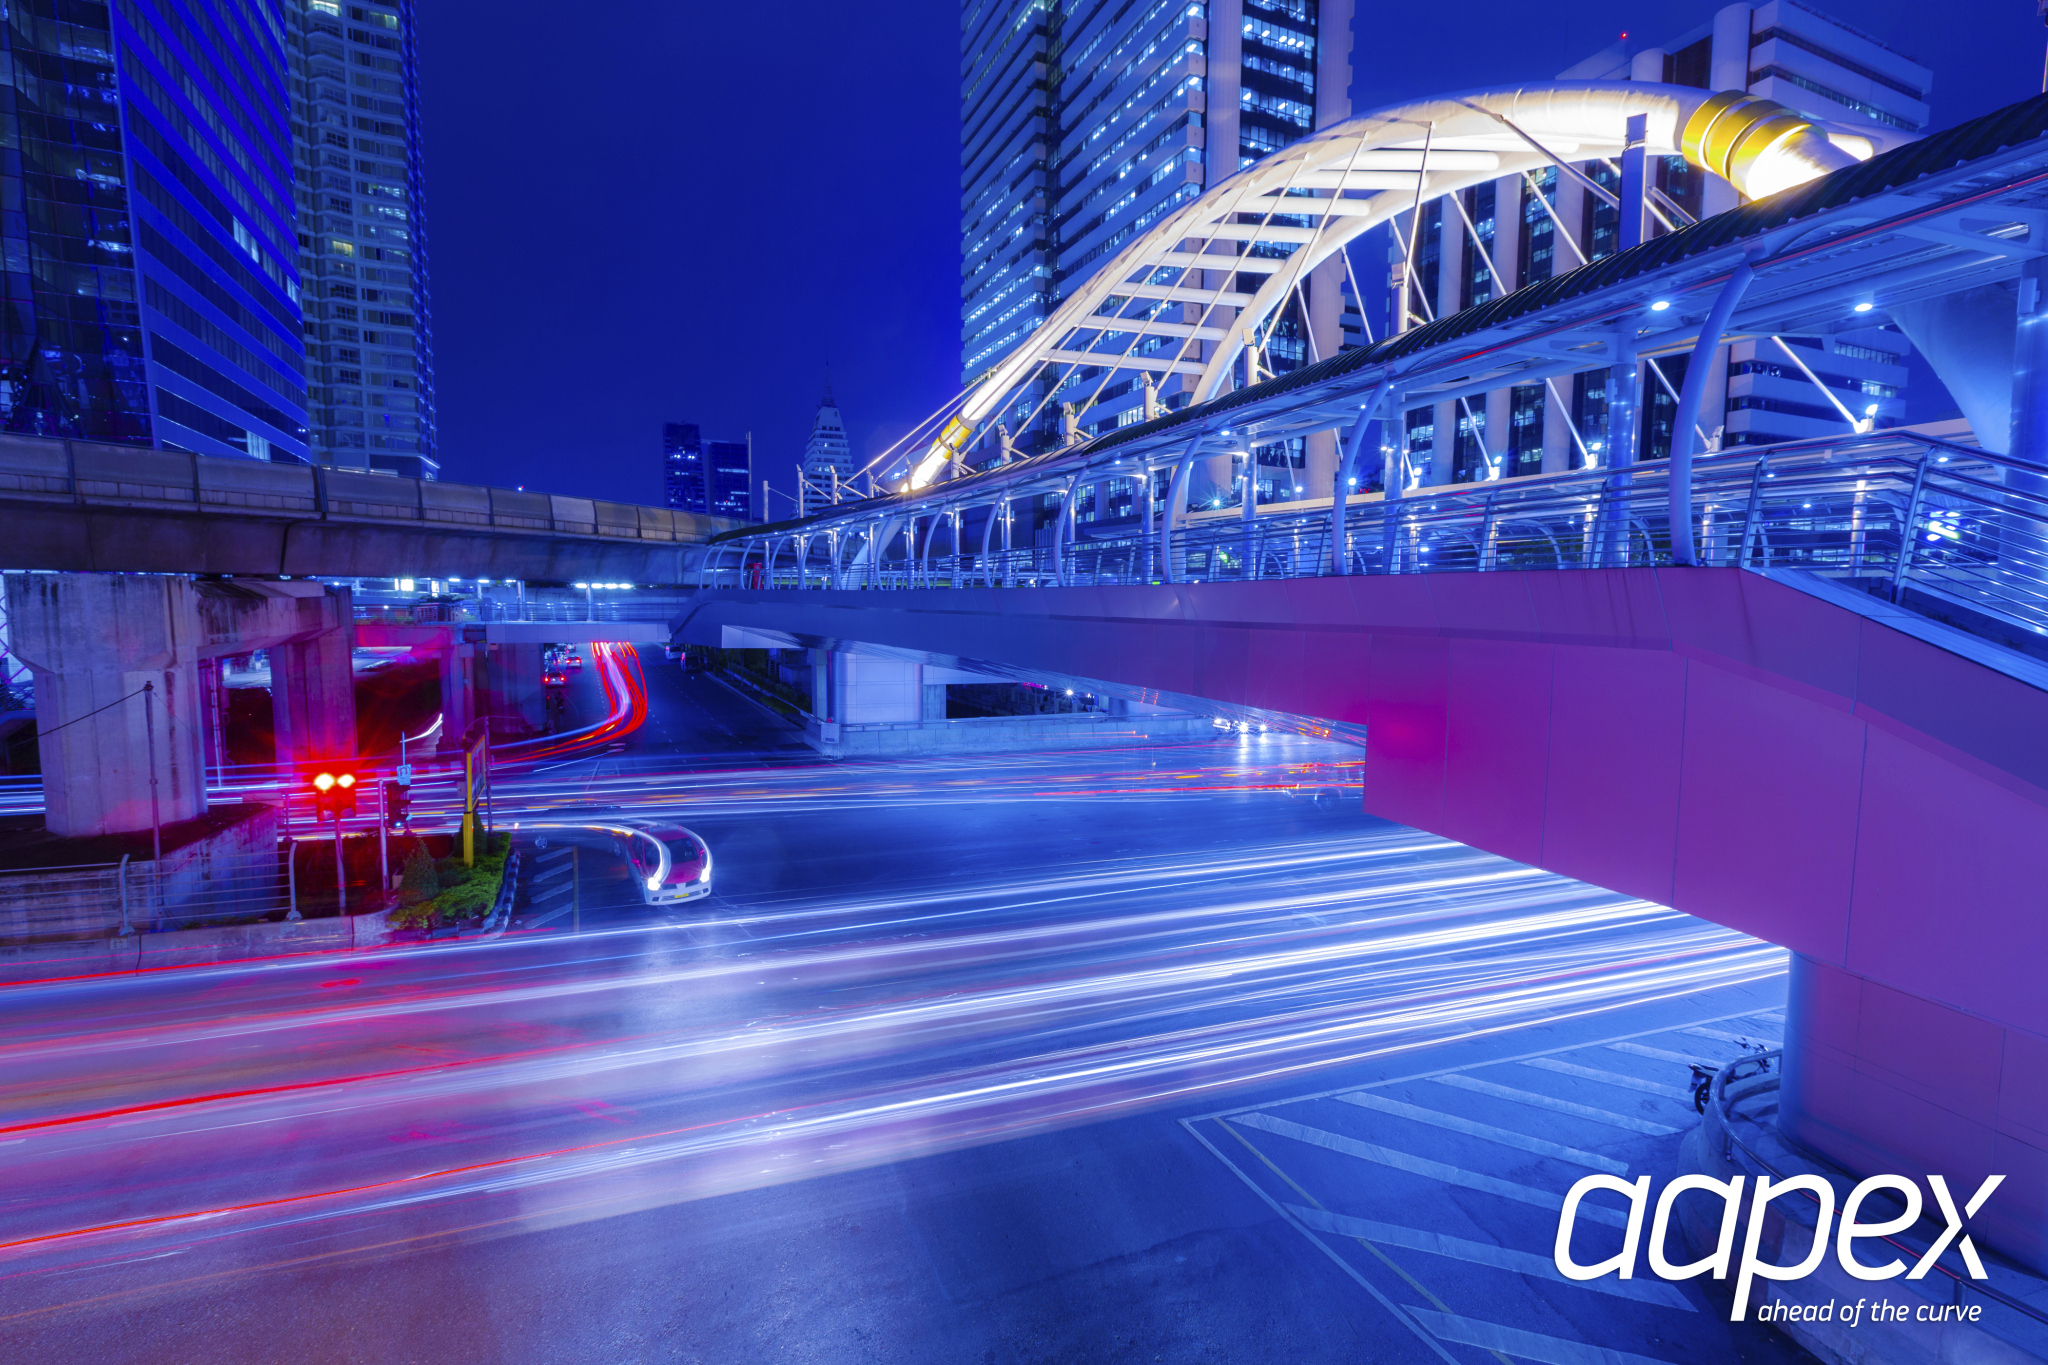 AAPEX 2017 to Highlight Impact of Technology on Automotive Aftermarket